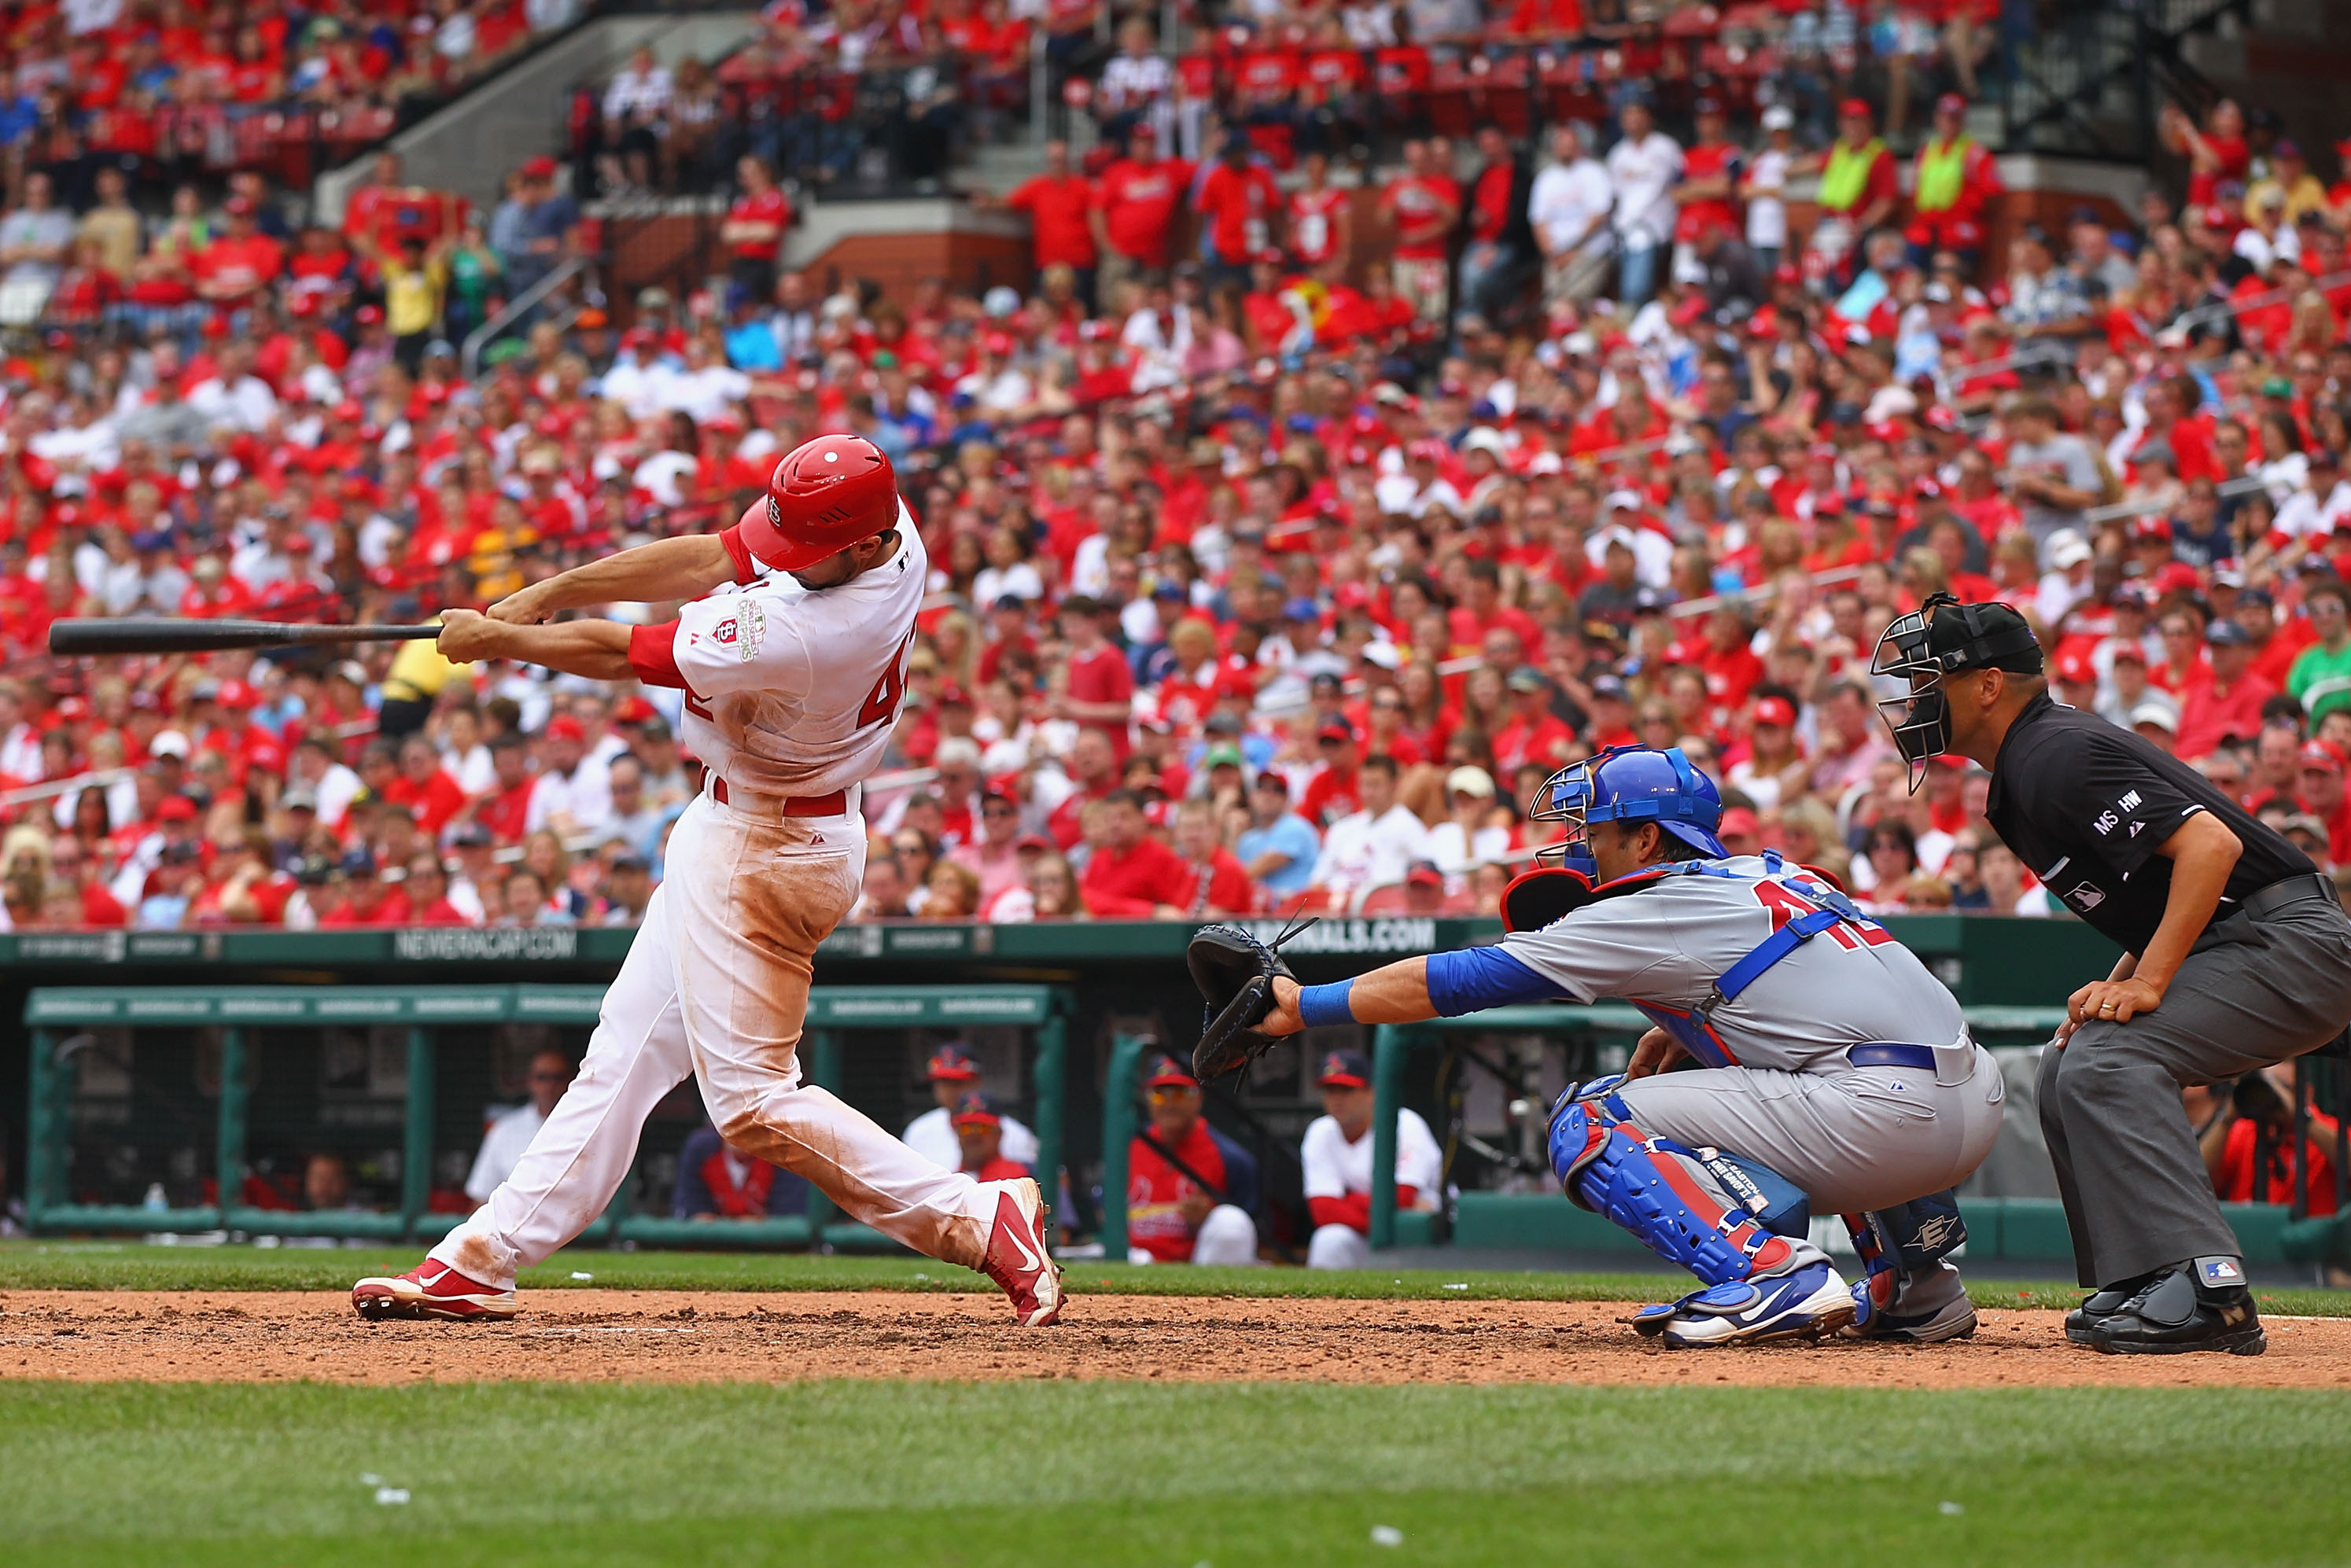 baseball cardinals cubs mlb vs rivalry why link east espn latest